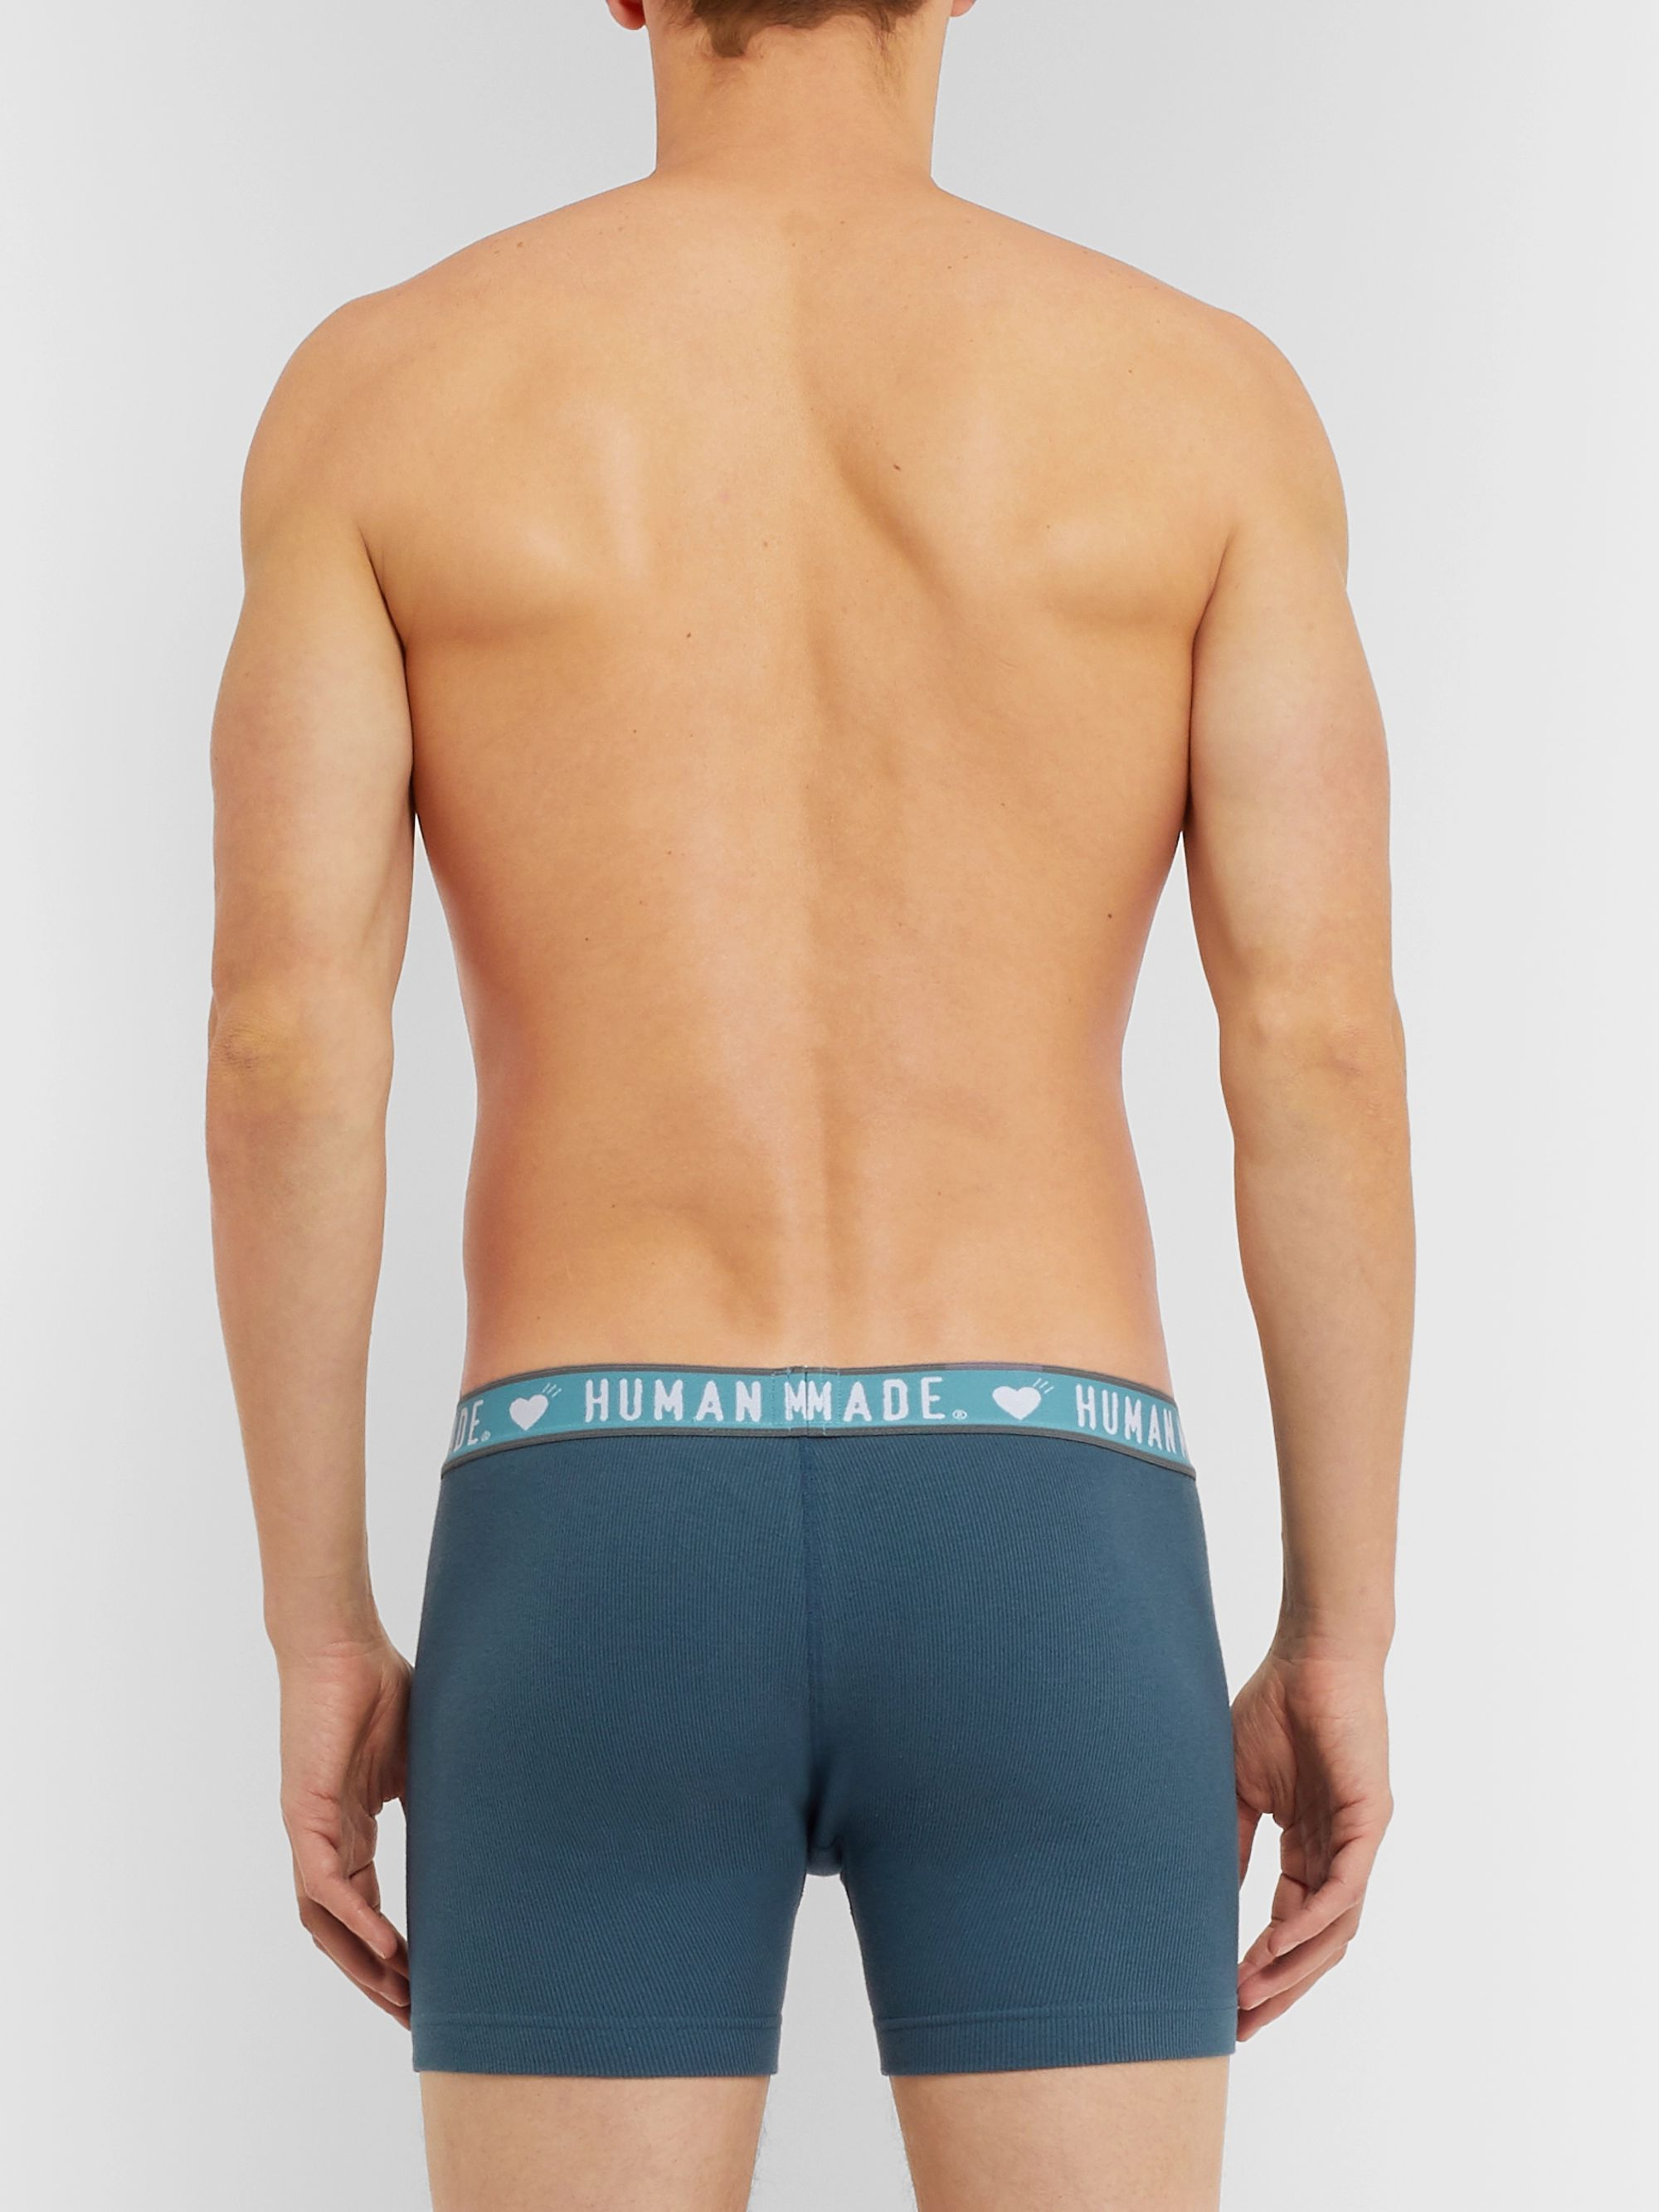 Human Made Ribbed Cotton Boxer Briefs